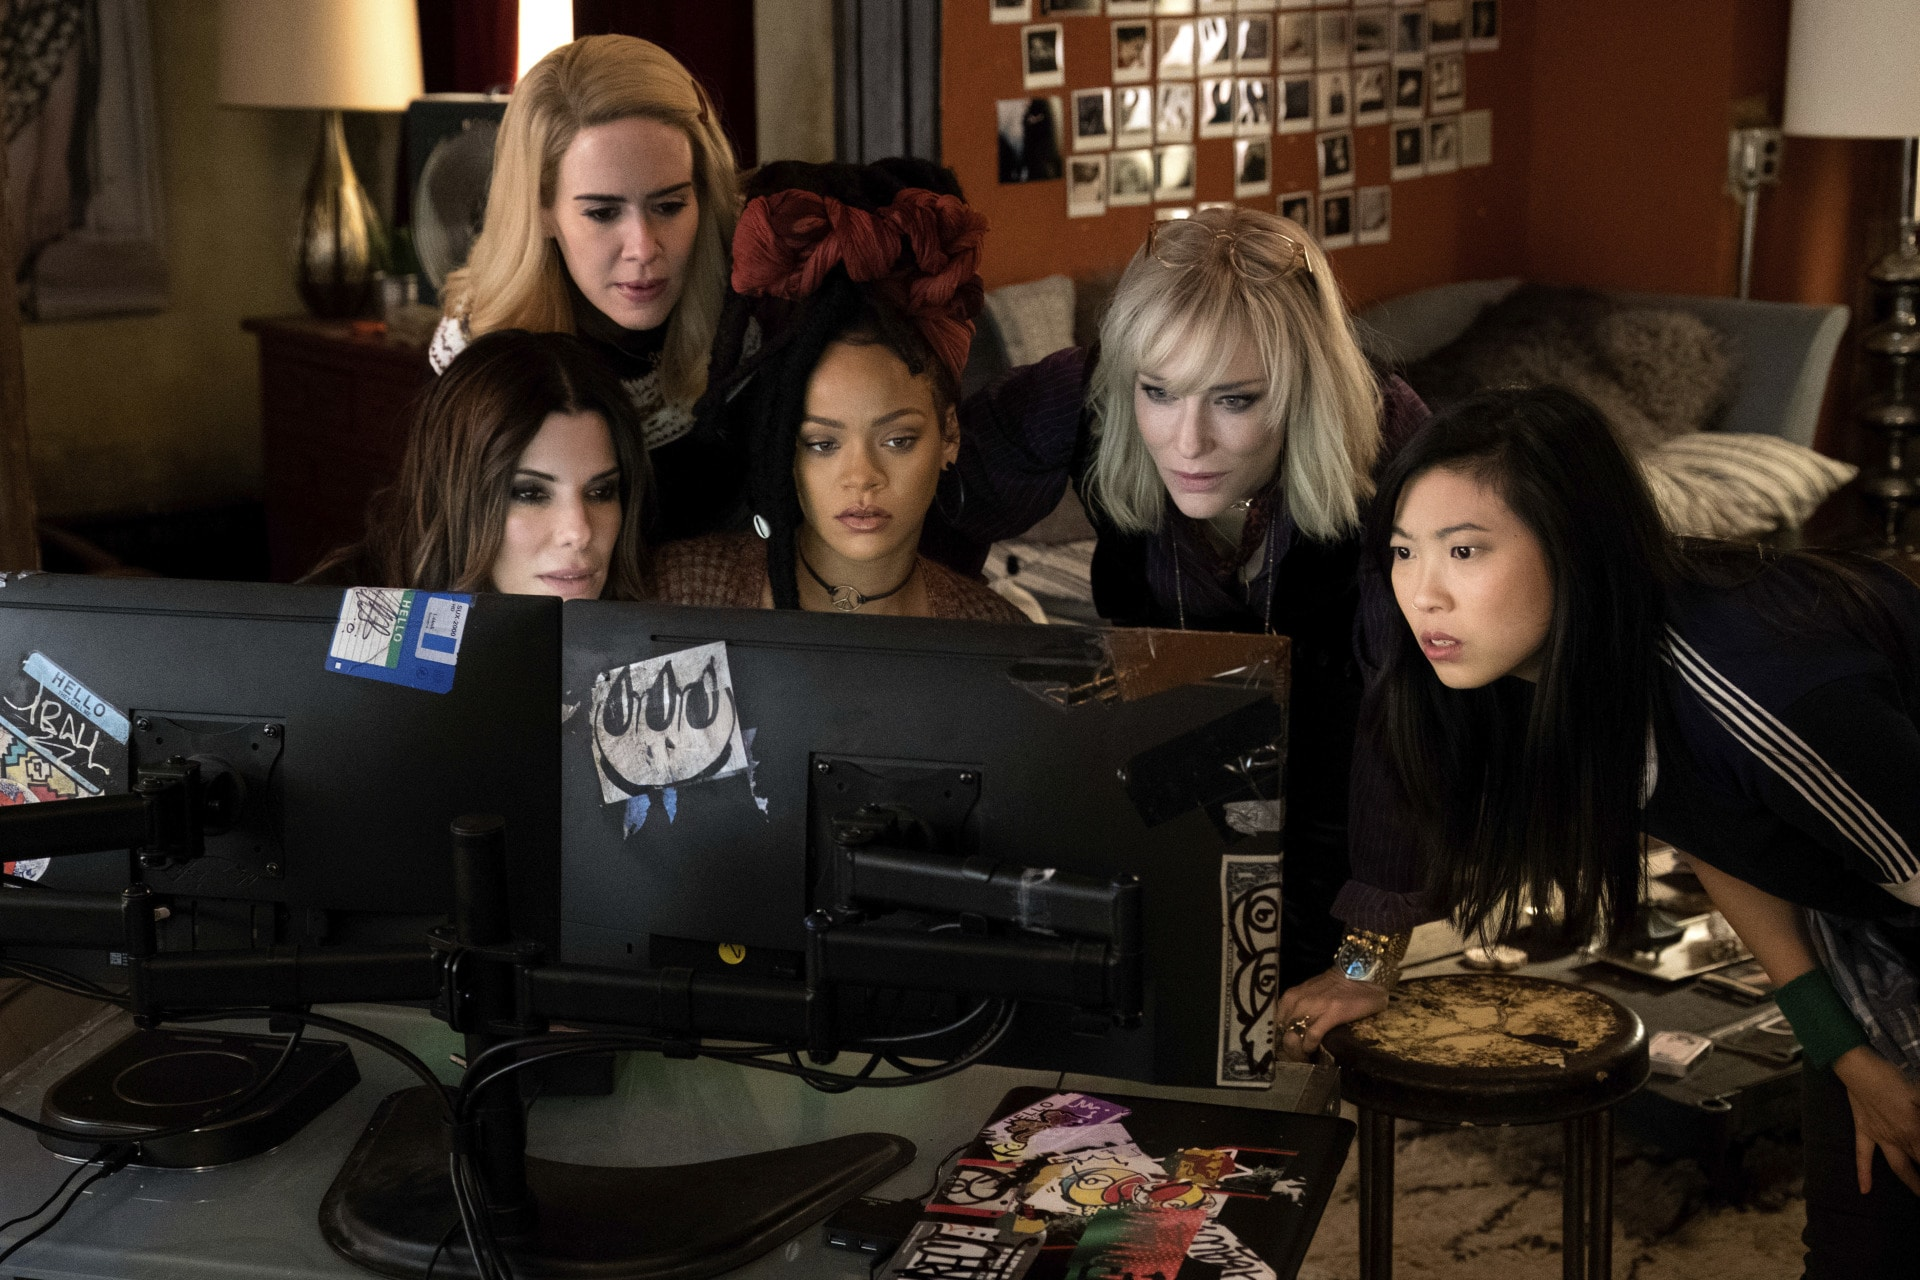 Ocean's 8 just broke a seriously impressive record at the box office